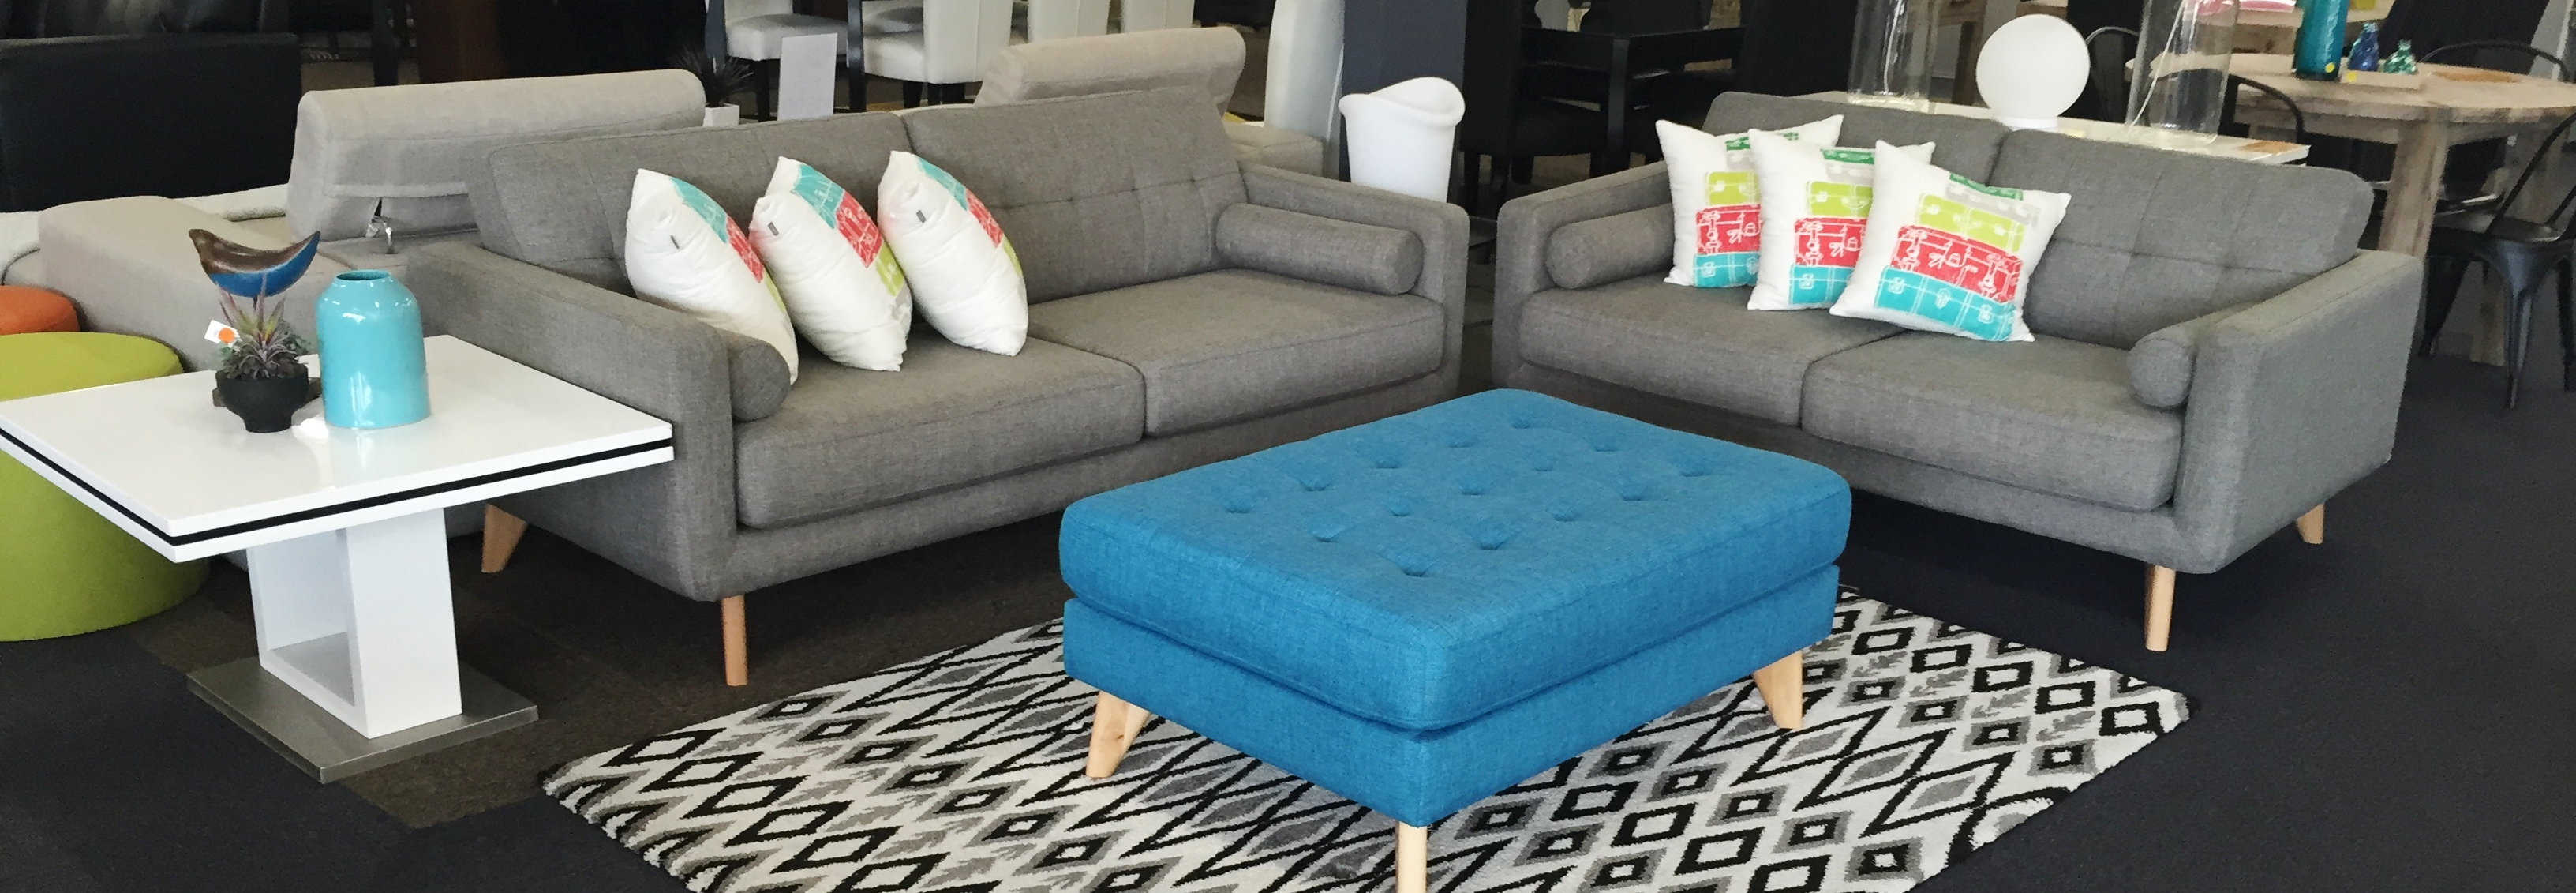 Ventura Lounge Suite Ottoman Hagglehuge Online Furniture Store